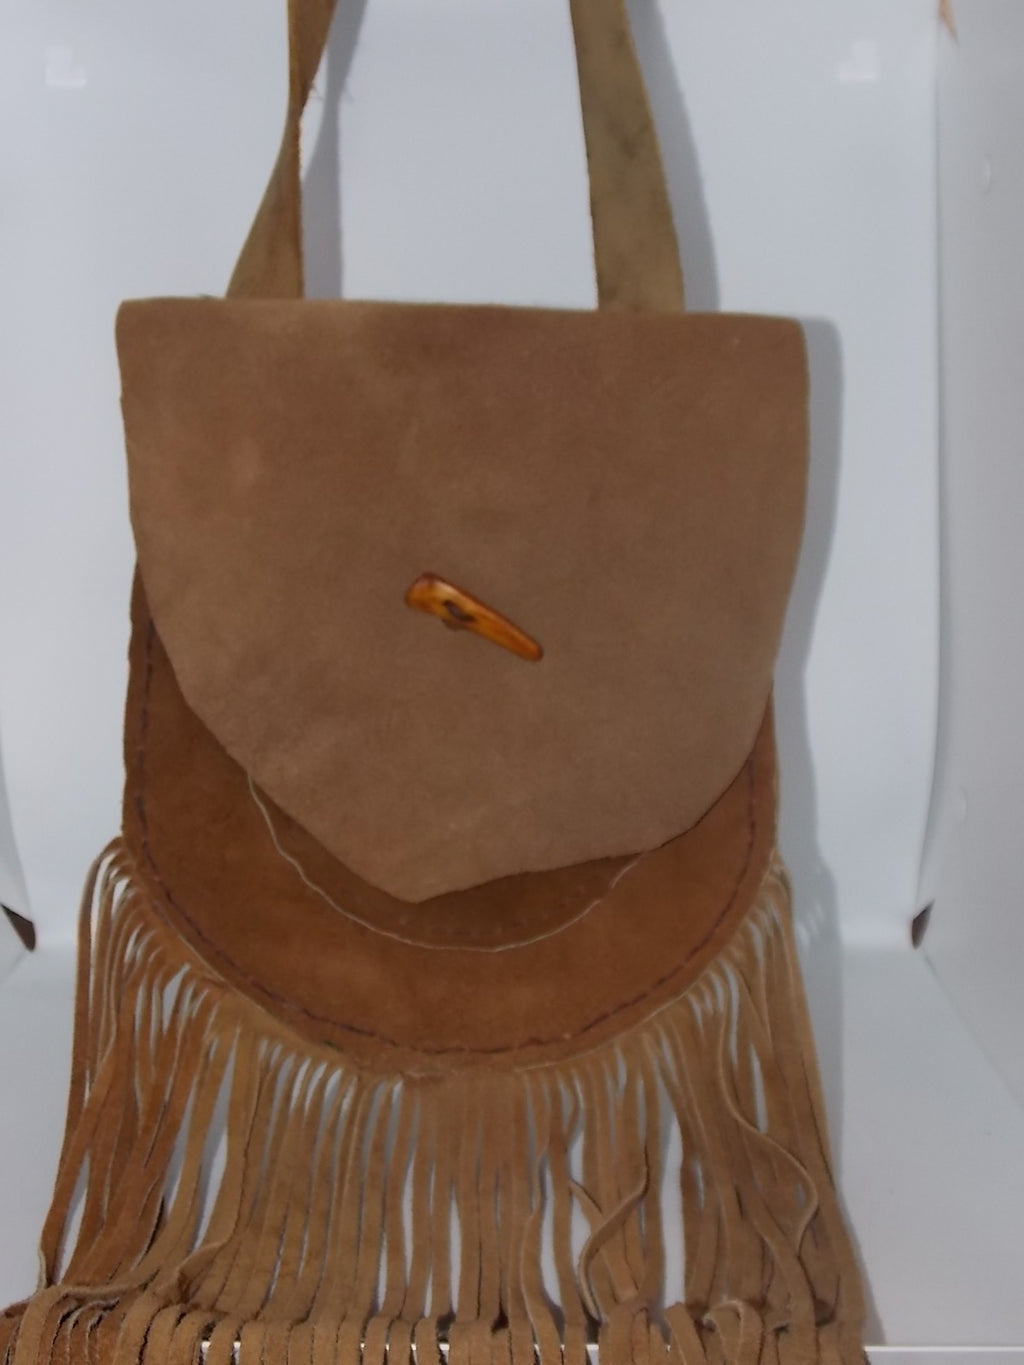 Fringed leather bag by Russel Dahlstrom